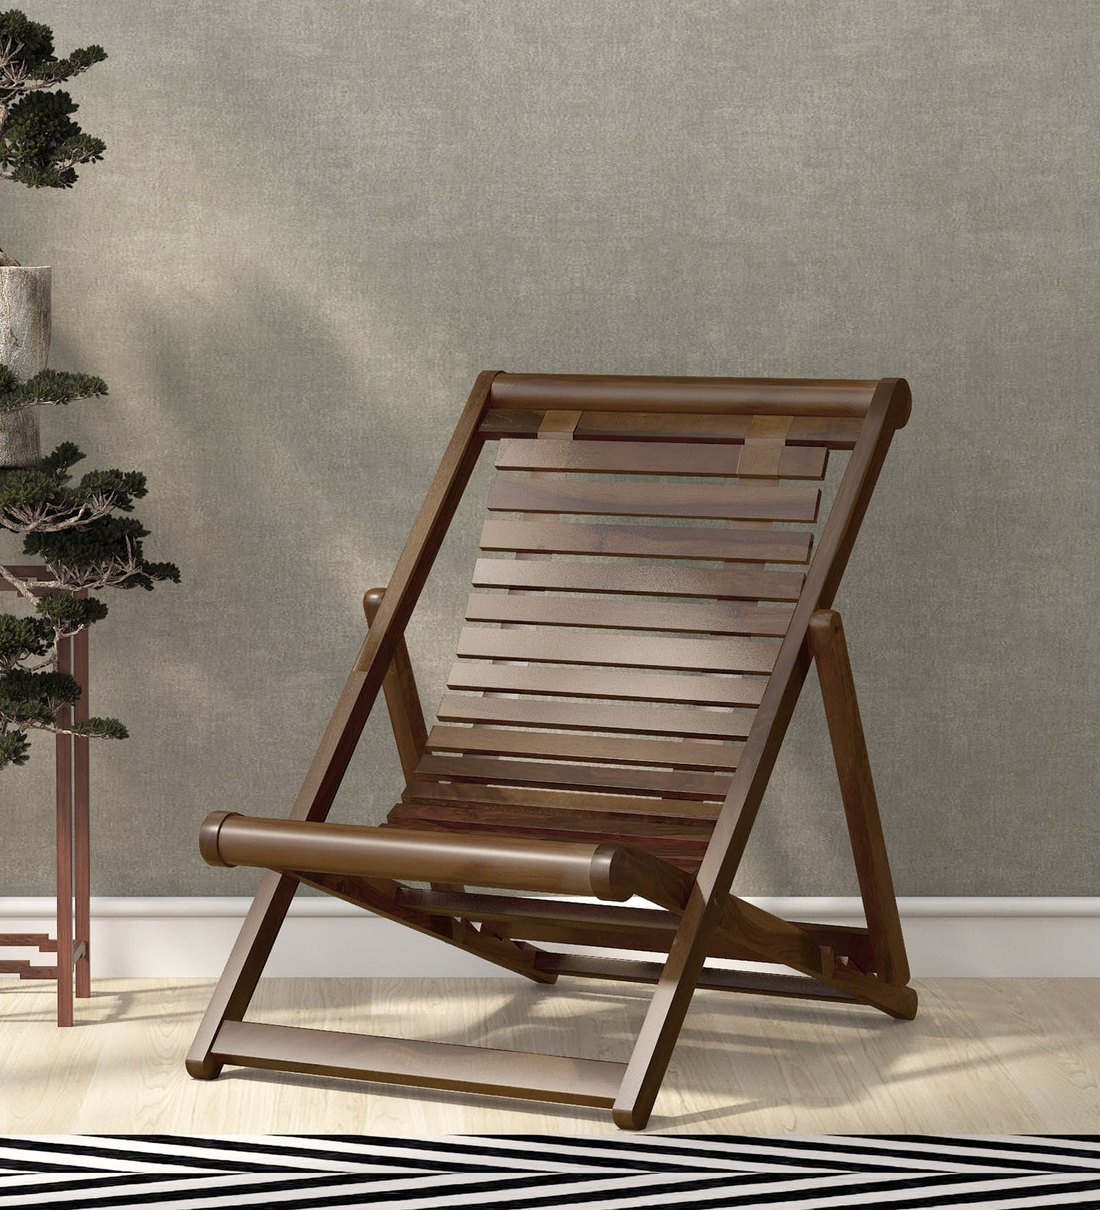 Most Current Doncaster Patio Deck Chair In Provincial Teak Finish Regarding Dorcaster Barrel Chairs (View 14 of 20)